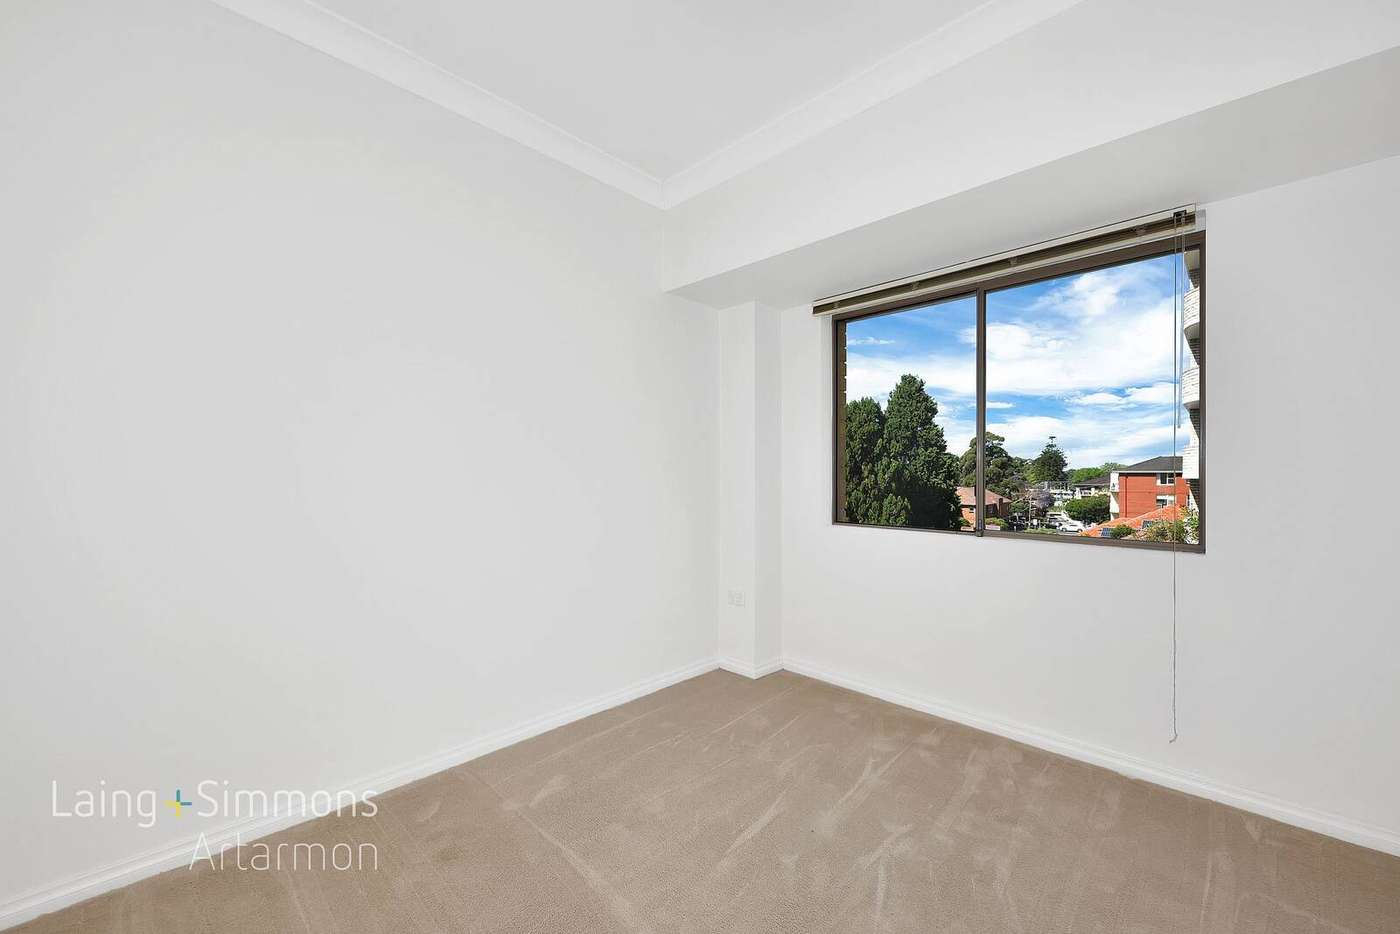 Sixth view of Homely unit listing, 10/11 Whitton Road, Chatswood NSW 2067